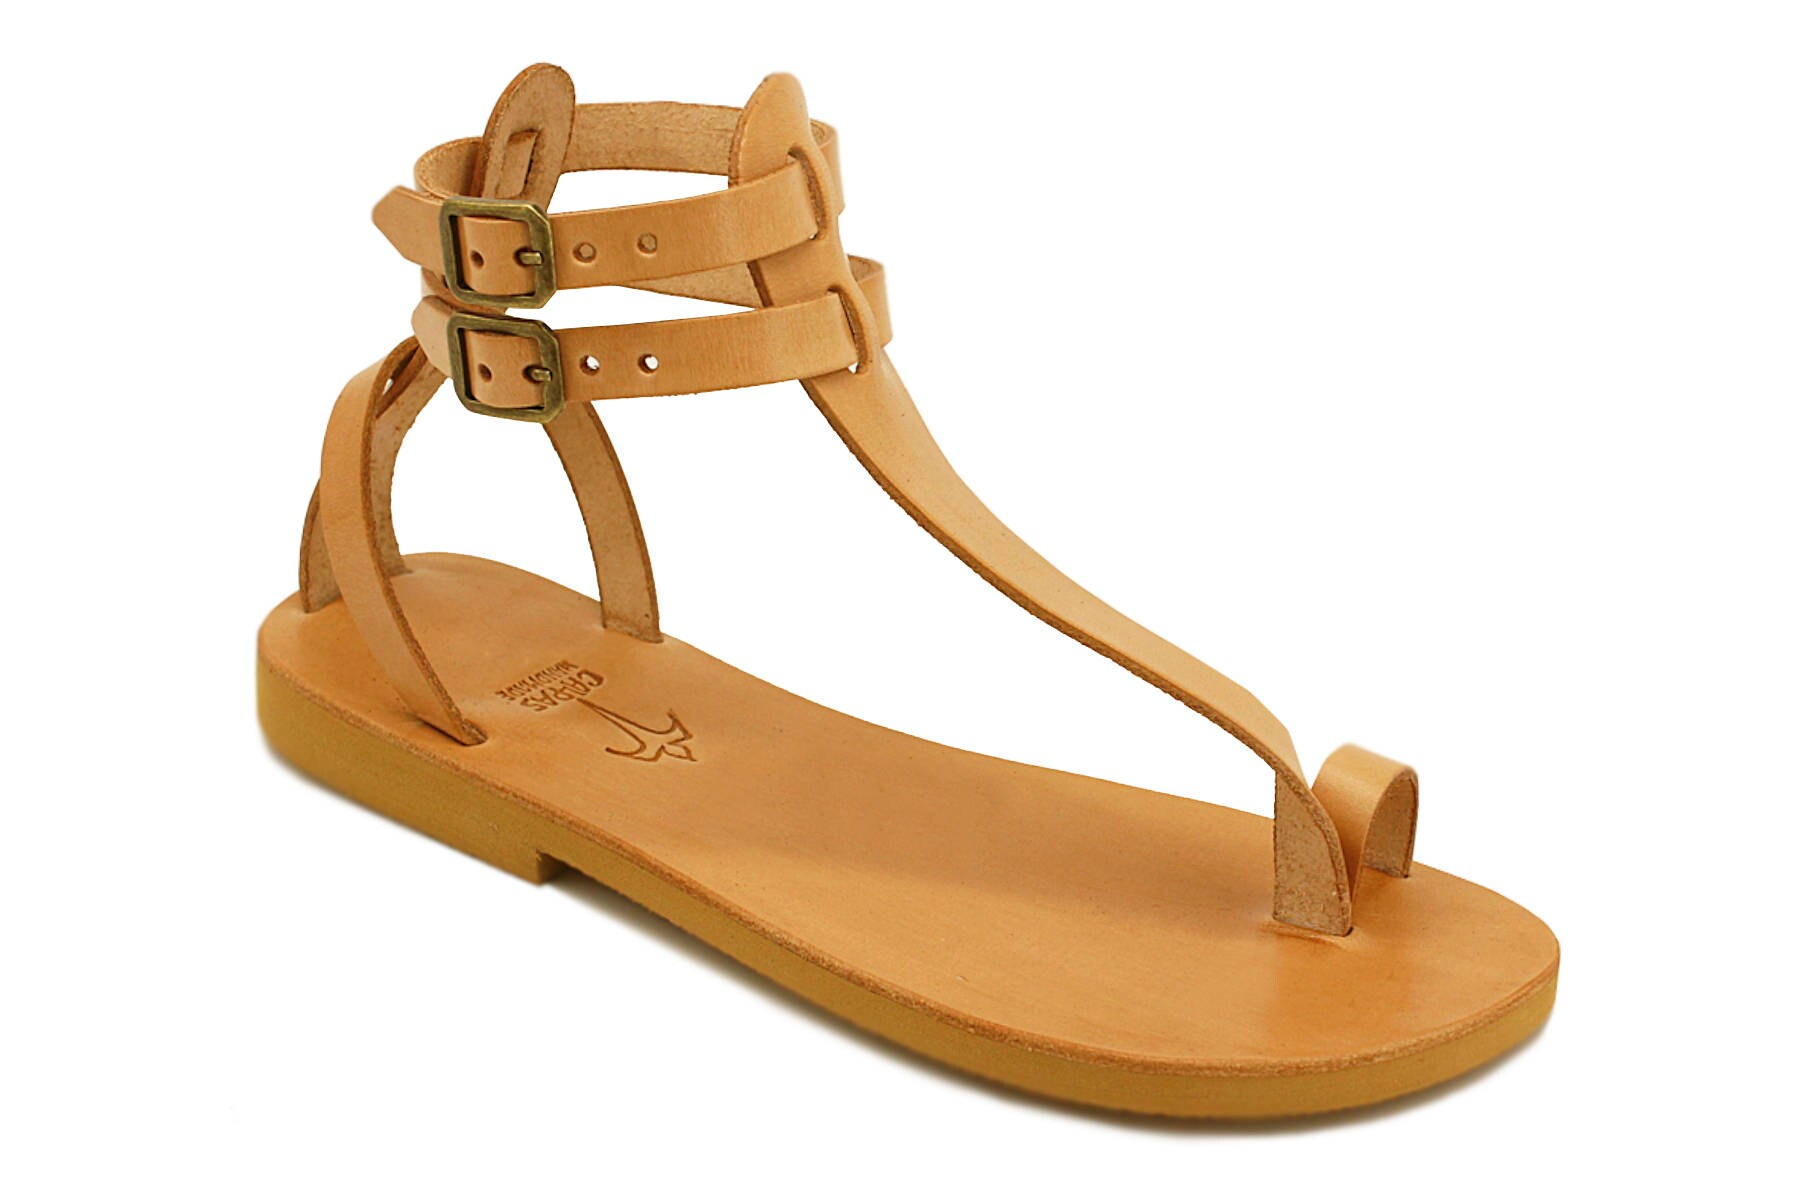 M.V. - gladiator thong sandals/ handmade leather t-strap shoes/ roman greek style/ t-strap leather ankle strap sandals with toe ring/large sizes 779b98